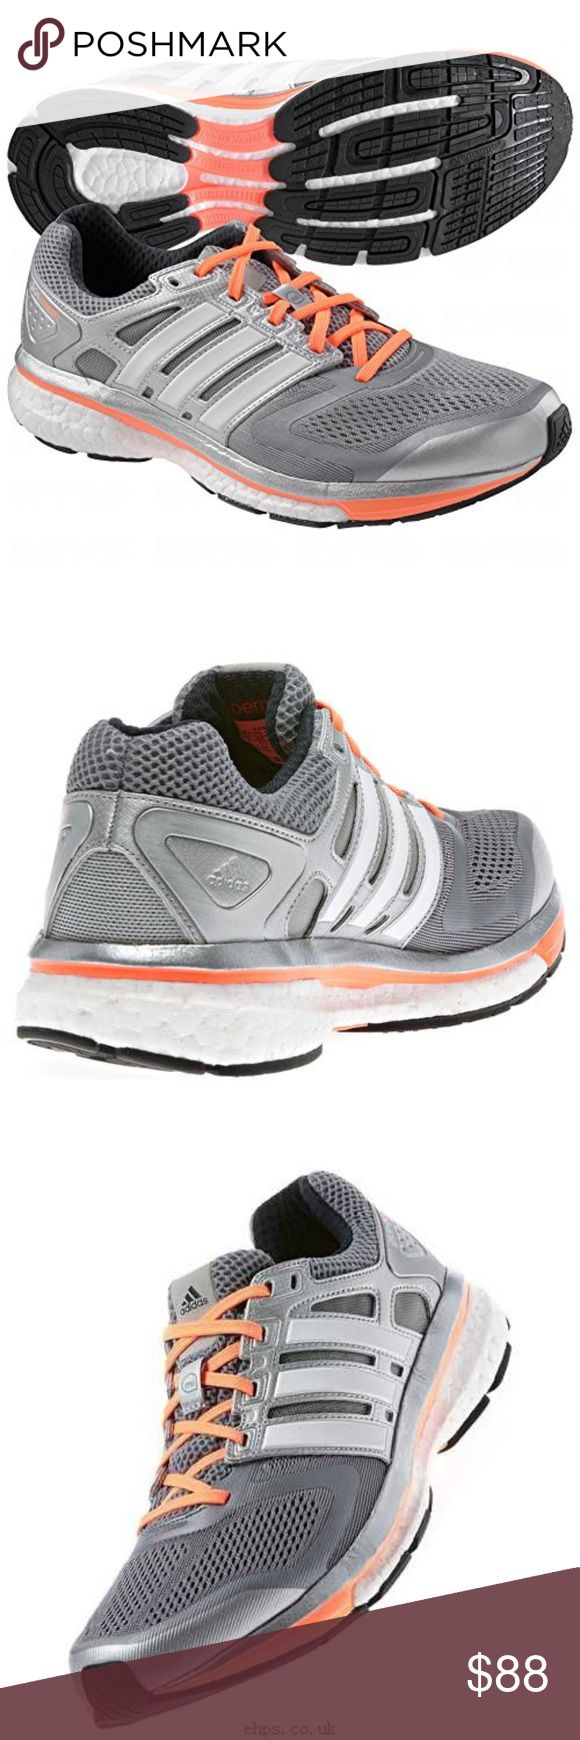 MINT Adidas GLIDE BOOST Silver Coral Womens 12 MINT Adidas GLIDE BOOST Silver Coral Womens 12, UK 10.5 45 2/3 EUR, same as men's 11 US. Worn only a couple times showing hardly any use. Comes with original clean insoles and laces. Adidas Shoes Athletic Shoes